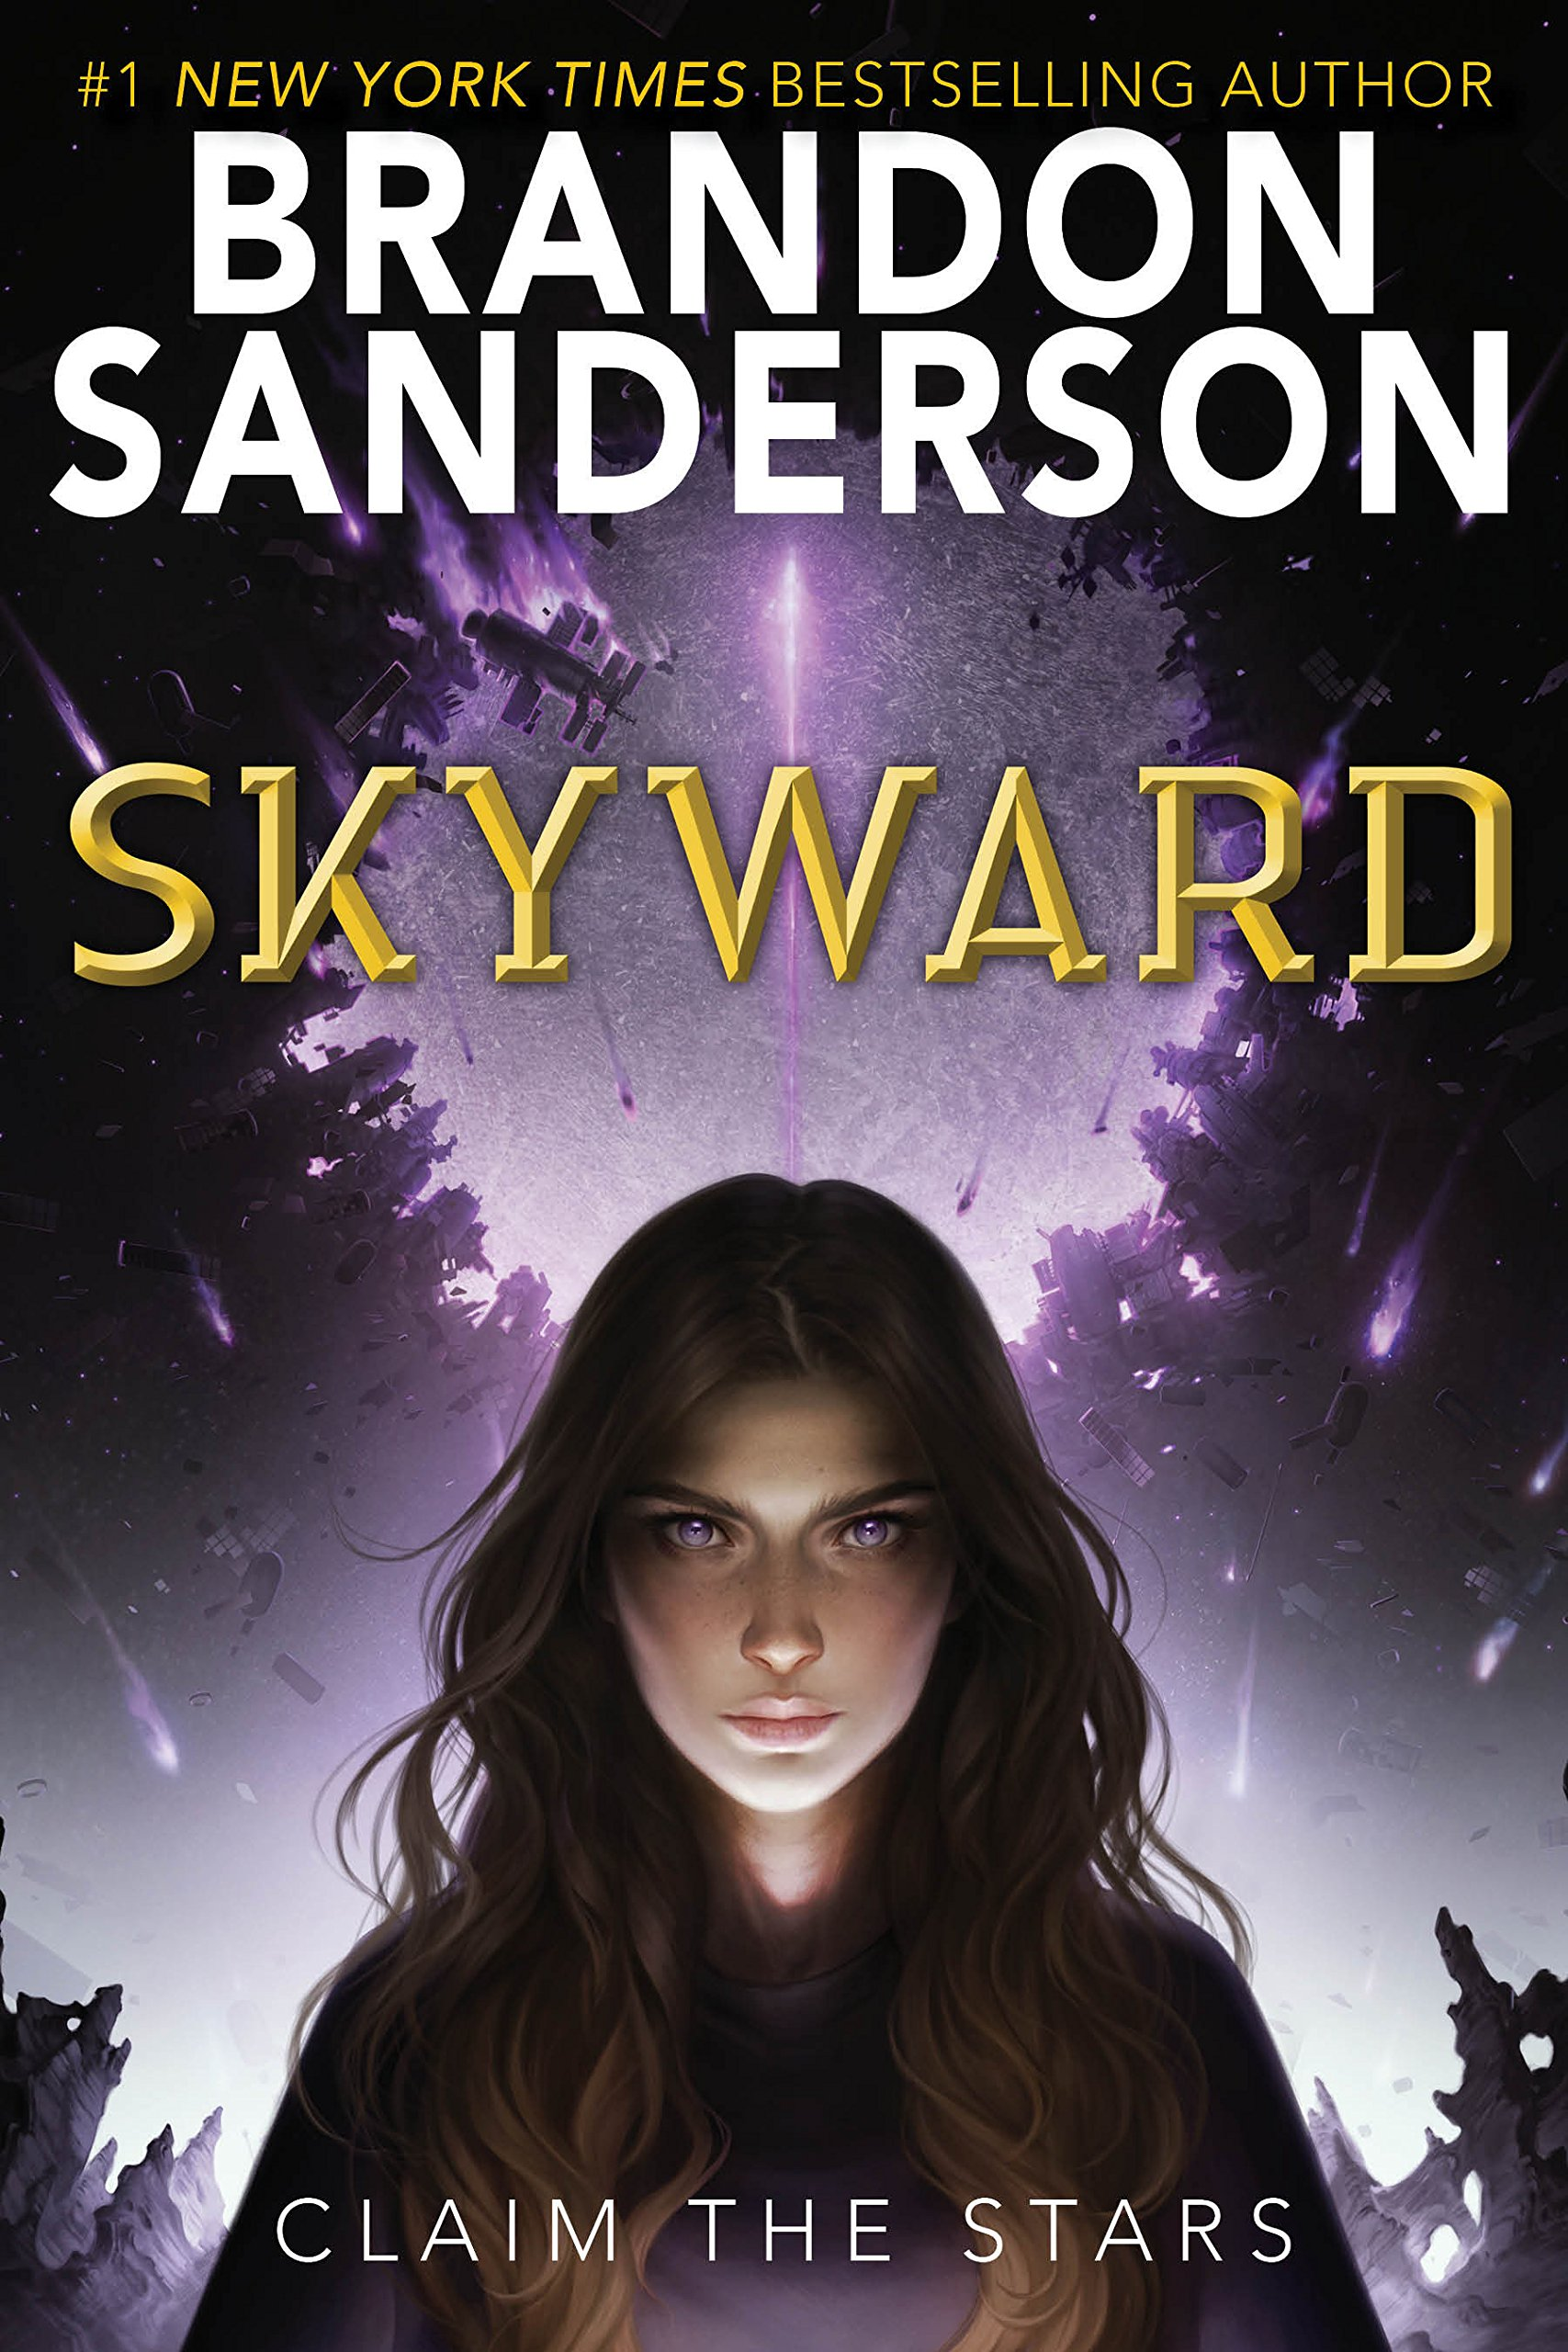 Amazon.com: Skyward (9780399555770): Sanderson, Brandon: Books